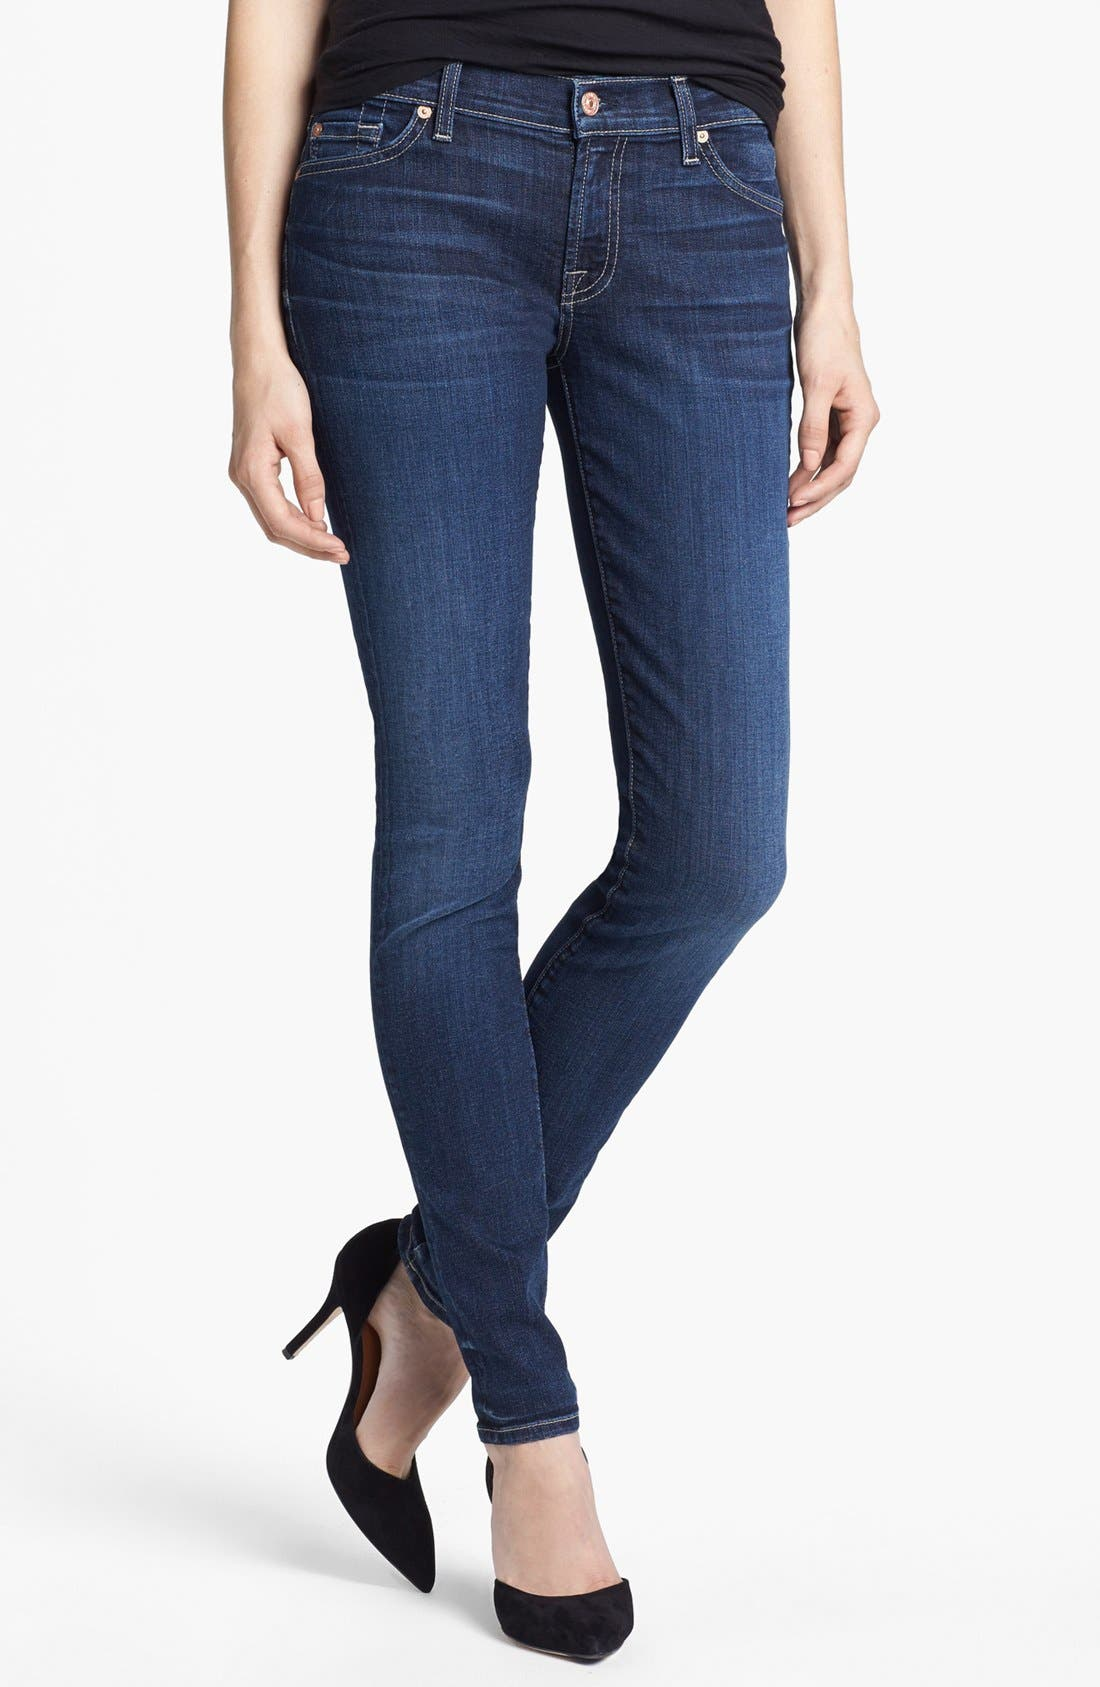 Alternate Image 1 Selected - 7 For All Mankind® 'The Skinny' Stretch Jeans (La Verna Lake)